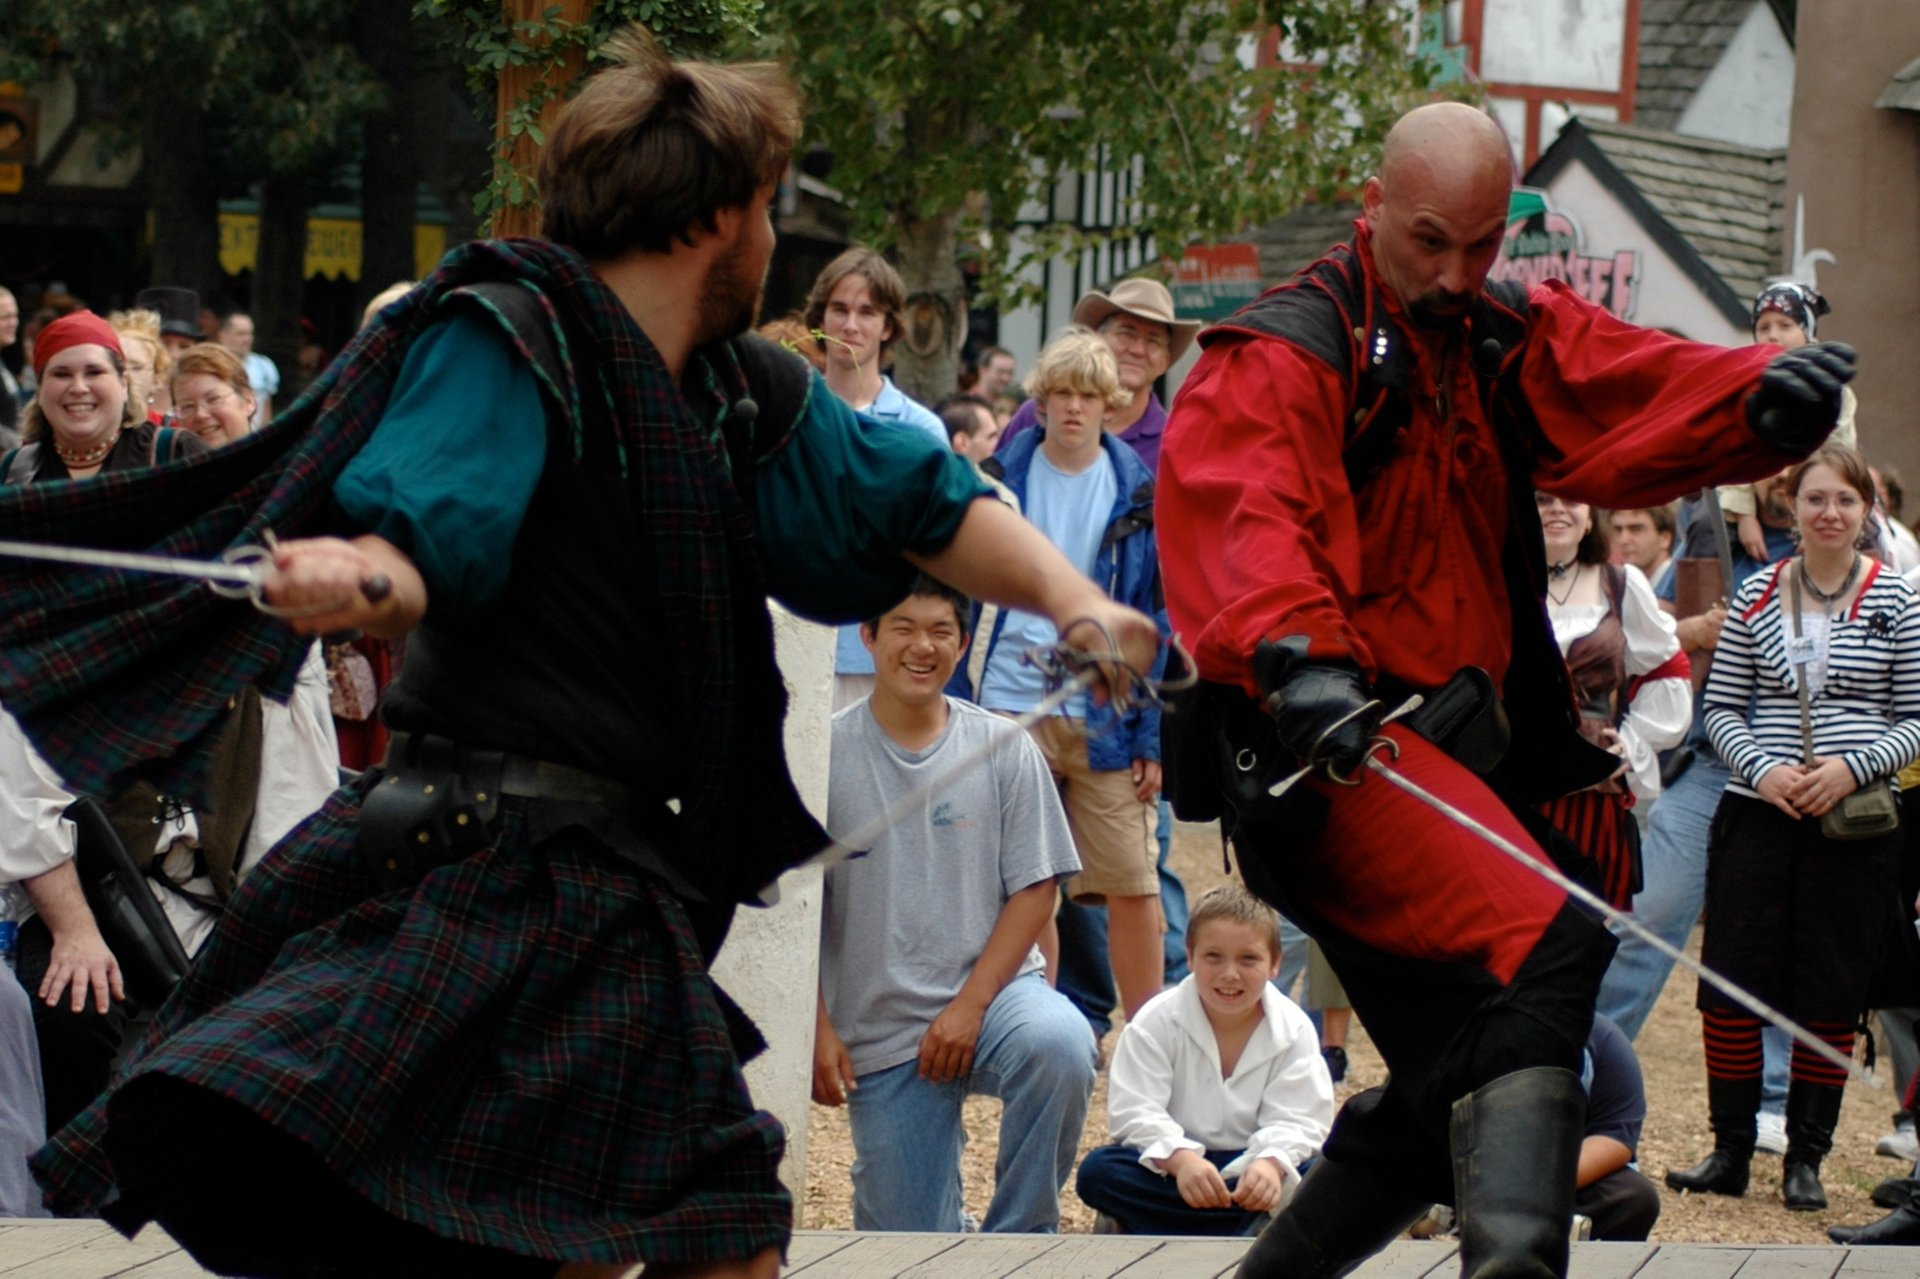 Swordplay at the Maryland Renaissance Festival. 2020